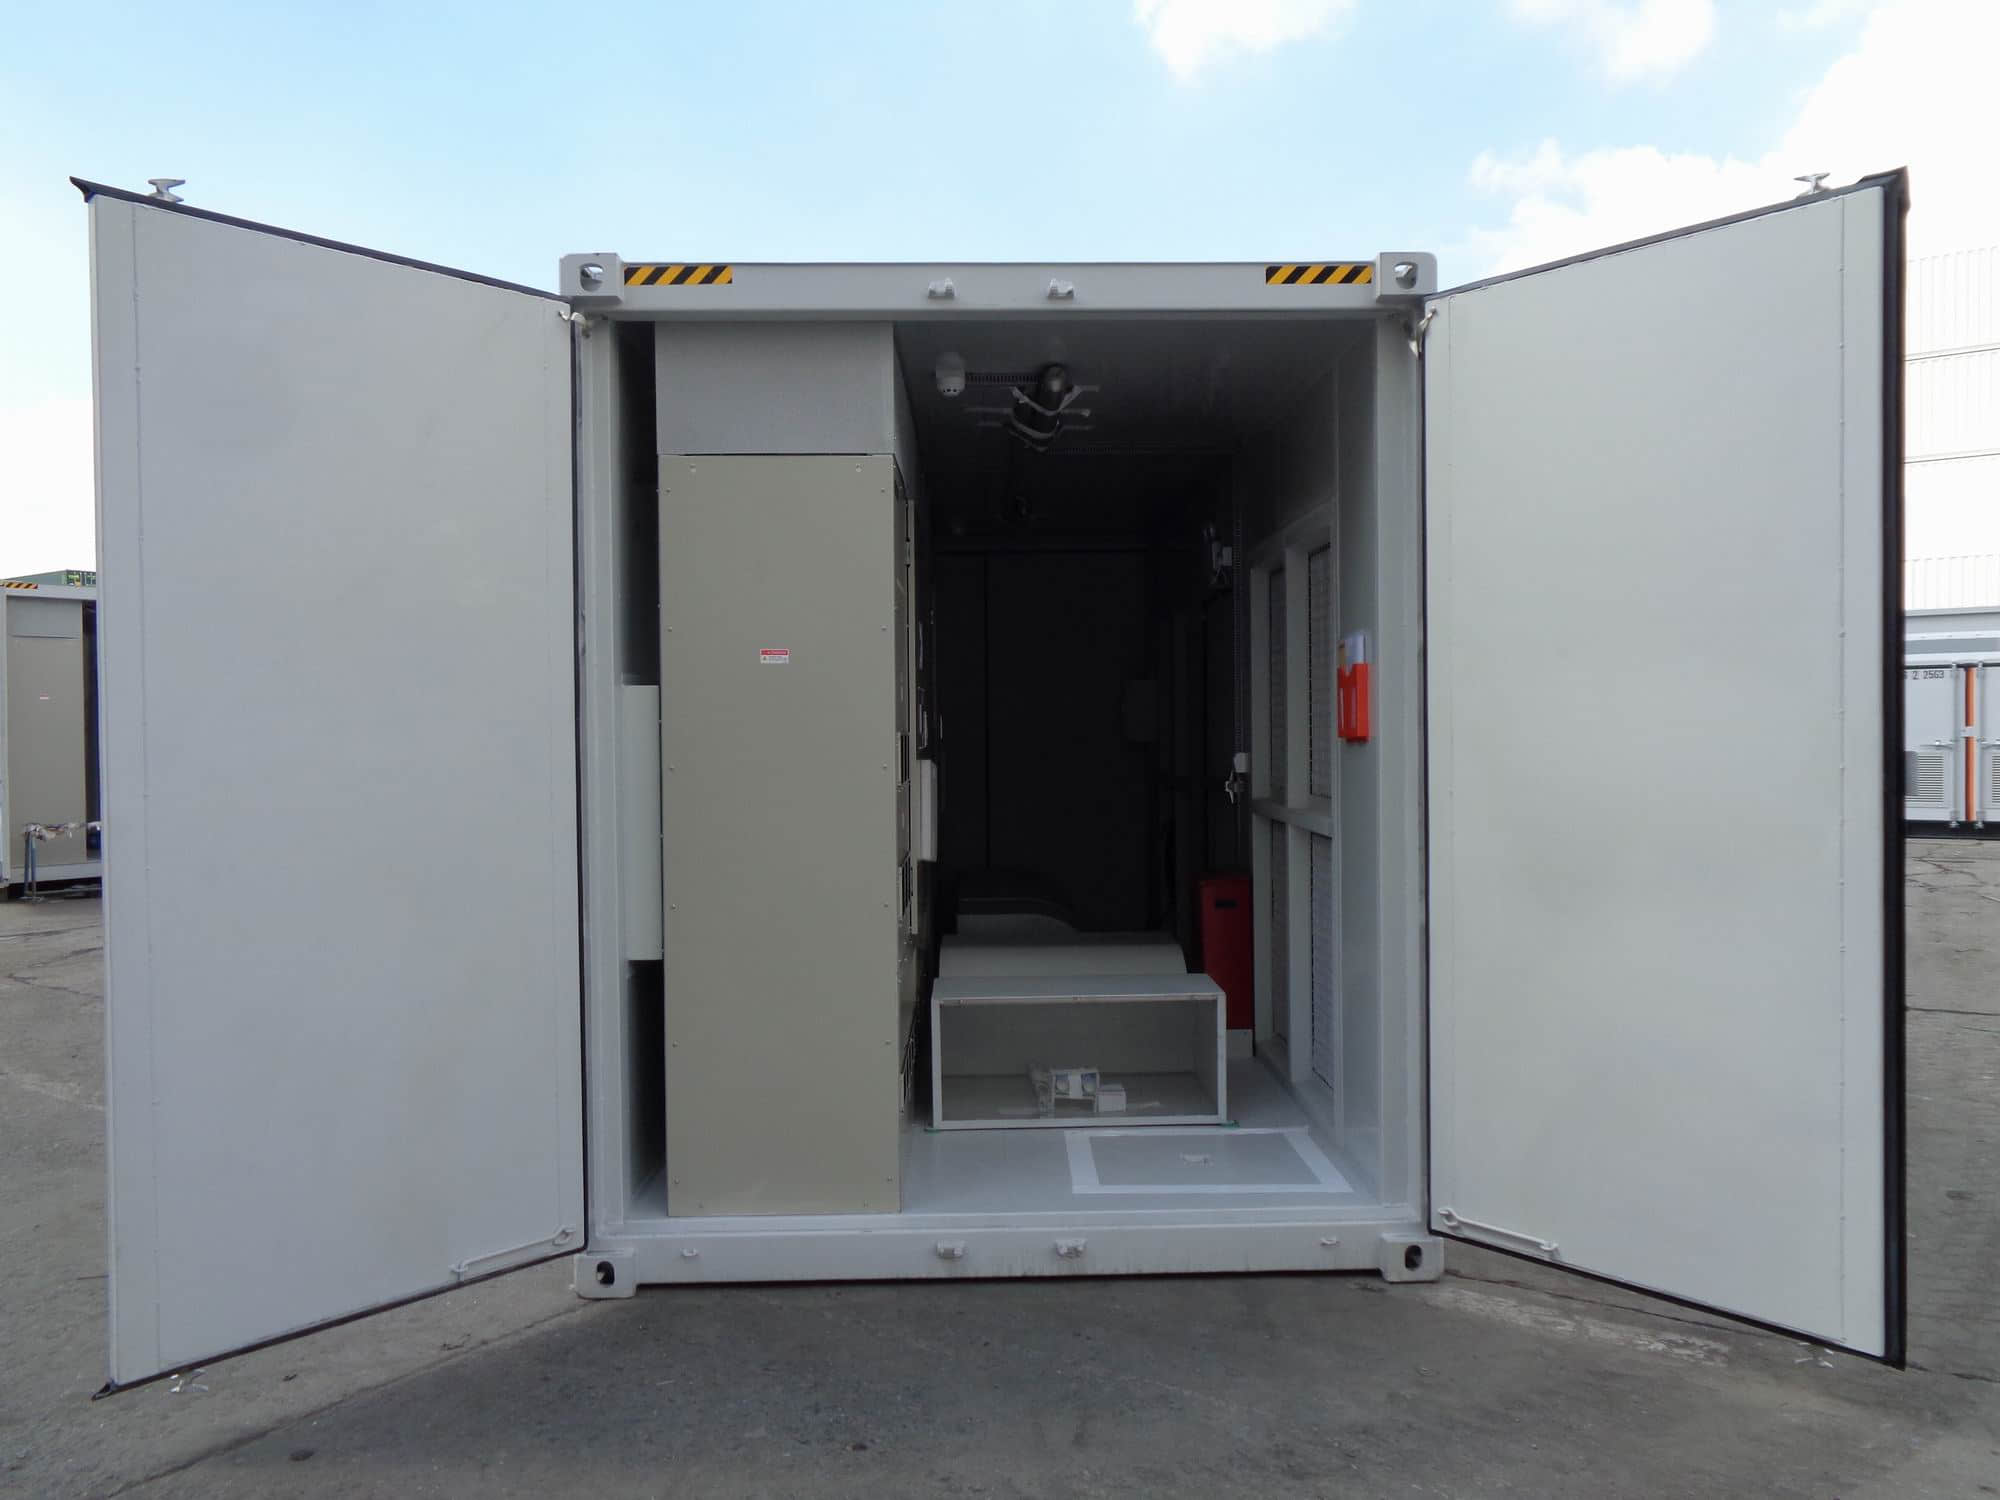 Solar container internal view